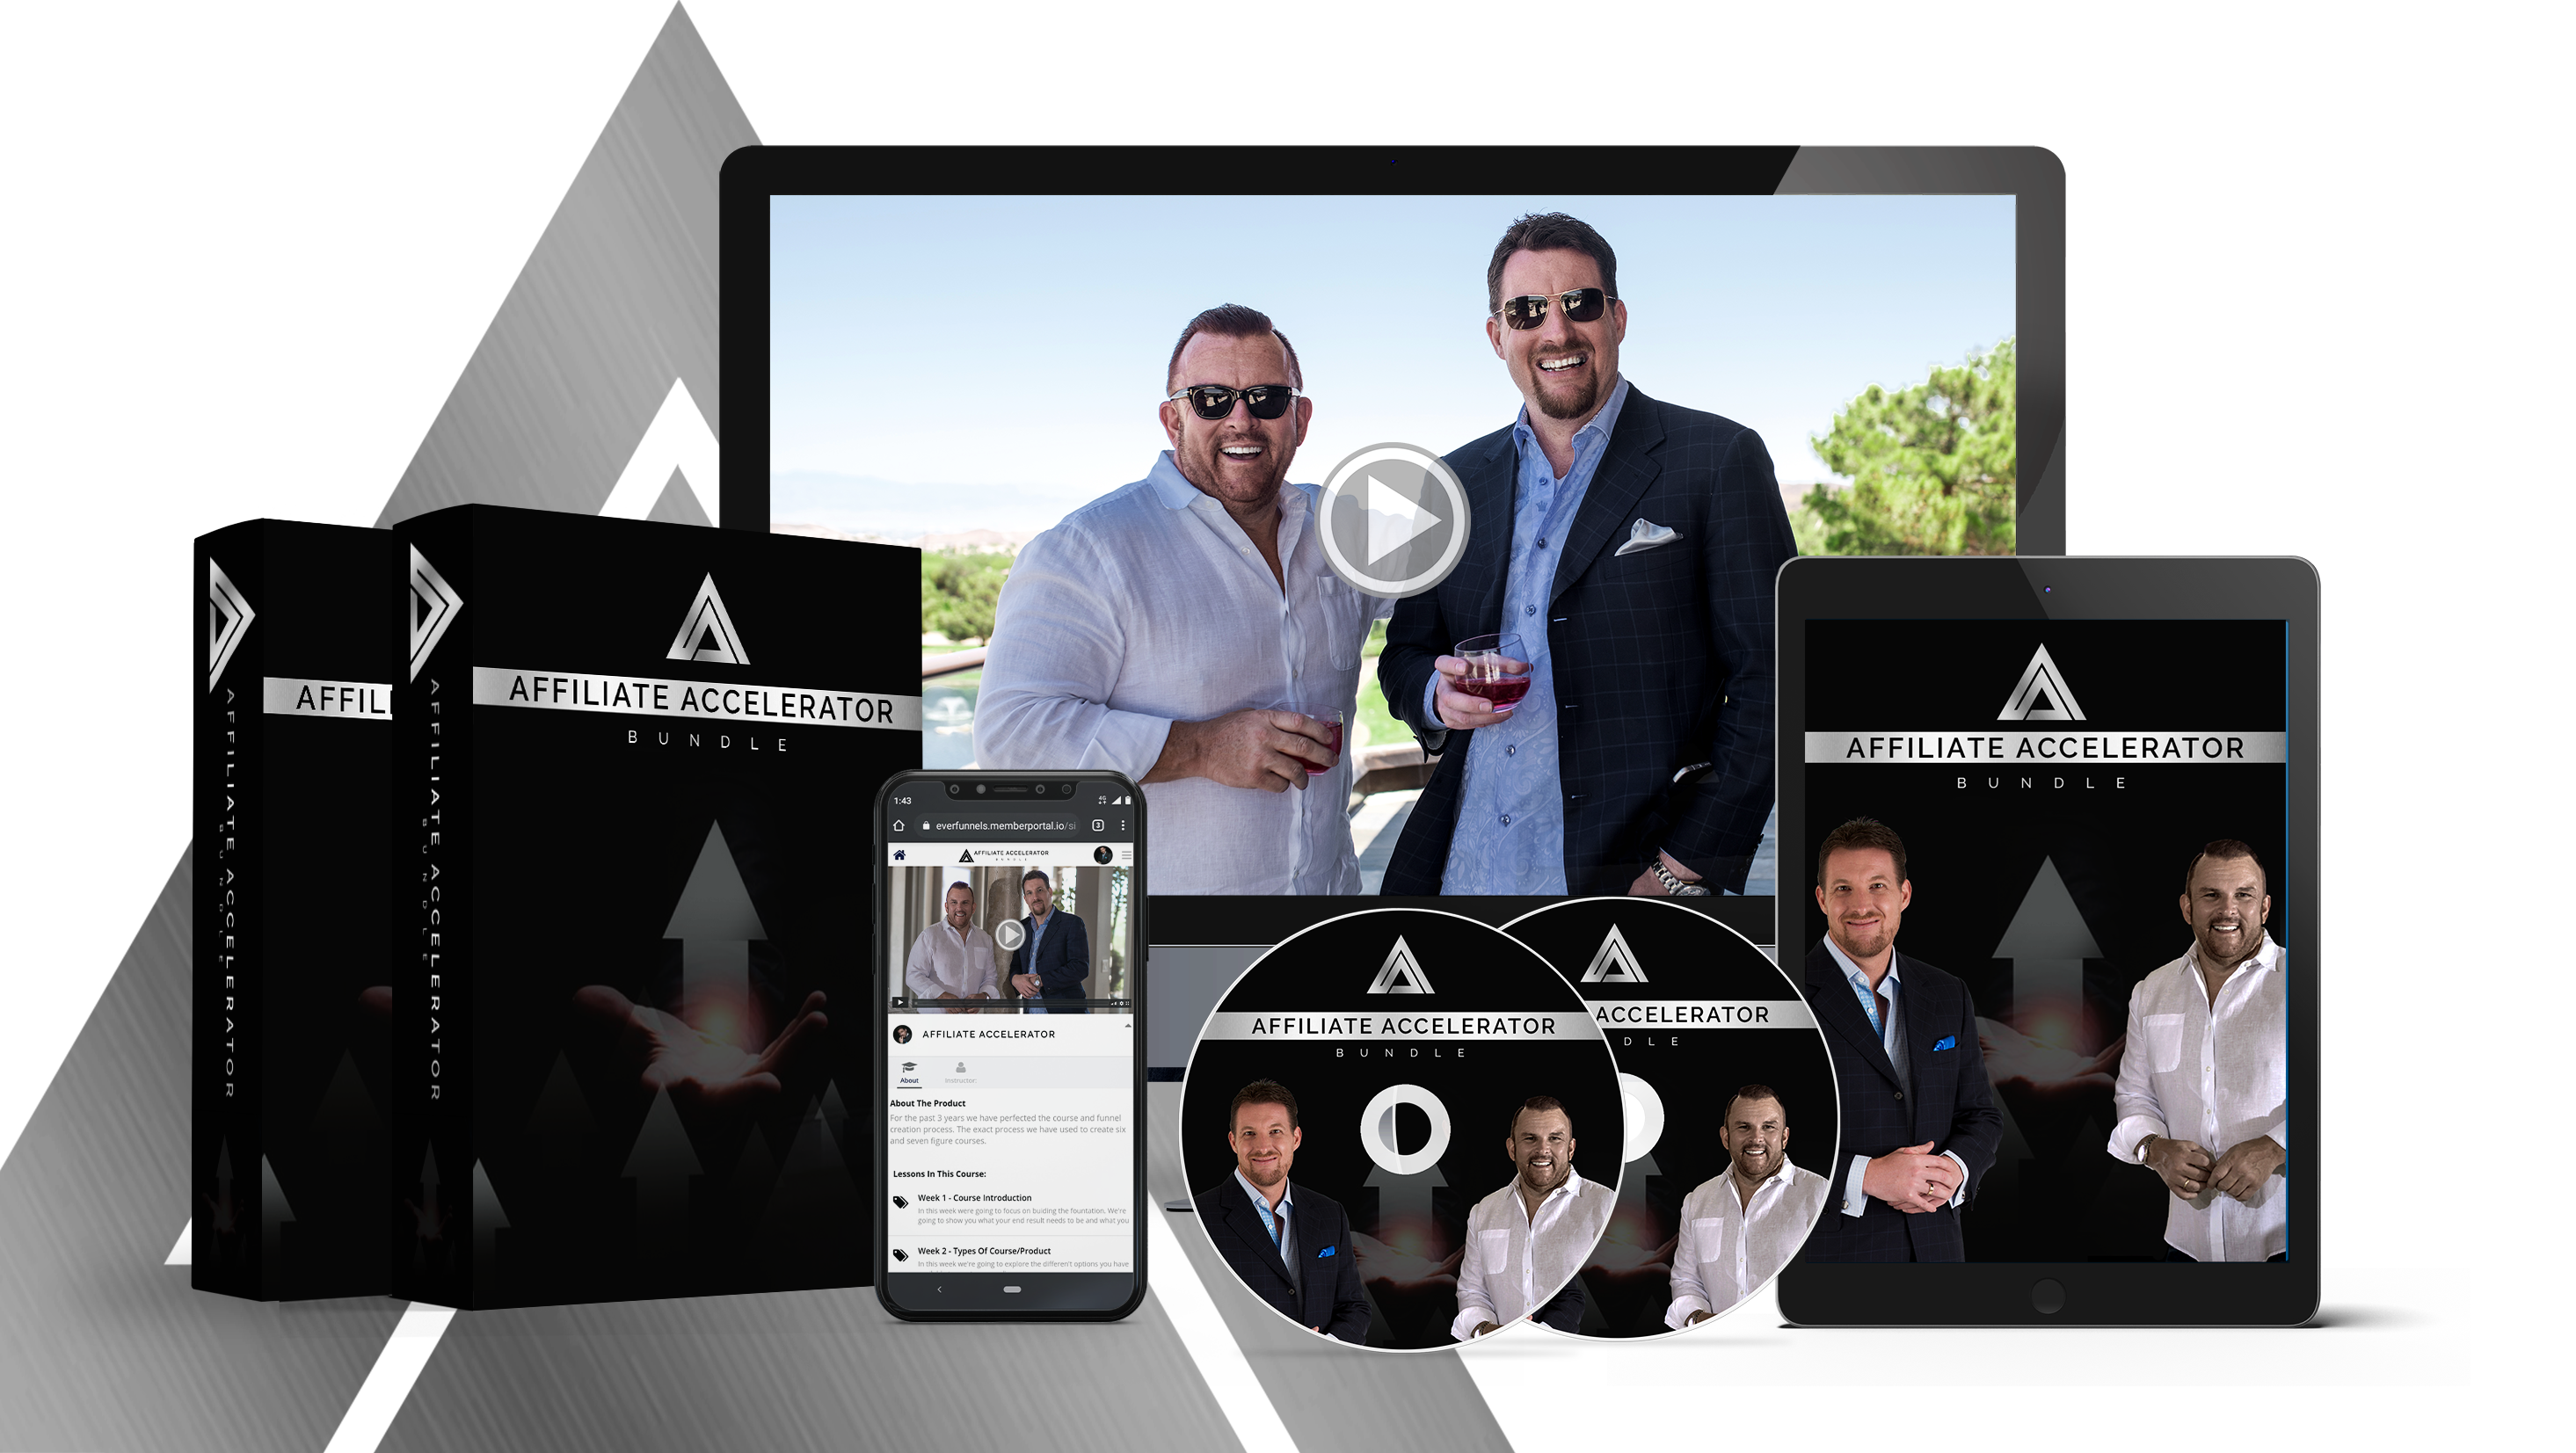 Join the free MintBird Power Affiliate Accelerator Program and start your free training with Perry Belcher and Chad Nicely by clicking on this link: http://smartketinglinks.com/mintbird